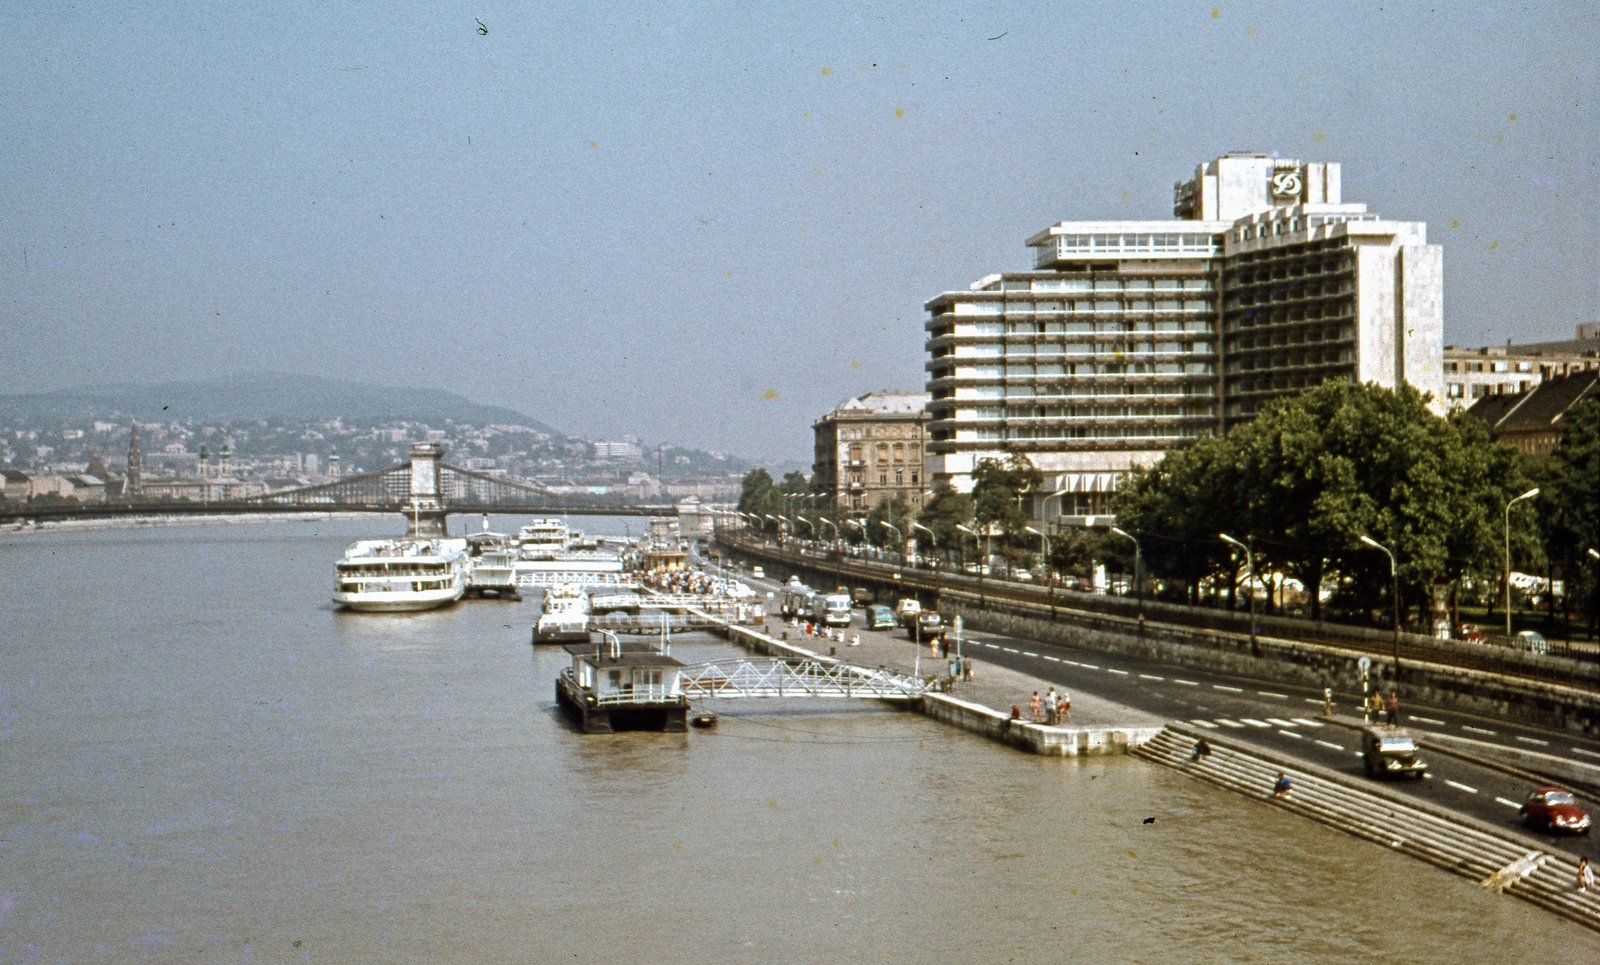 Intercontinental-Marriott-1970esEvek-fortepan.hu-70020